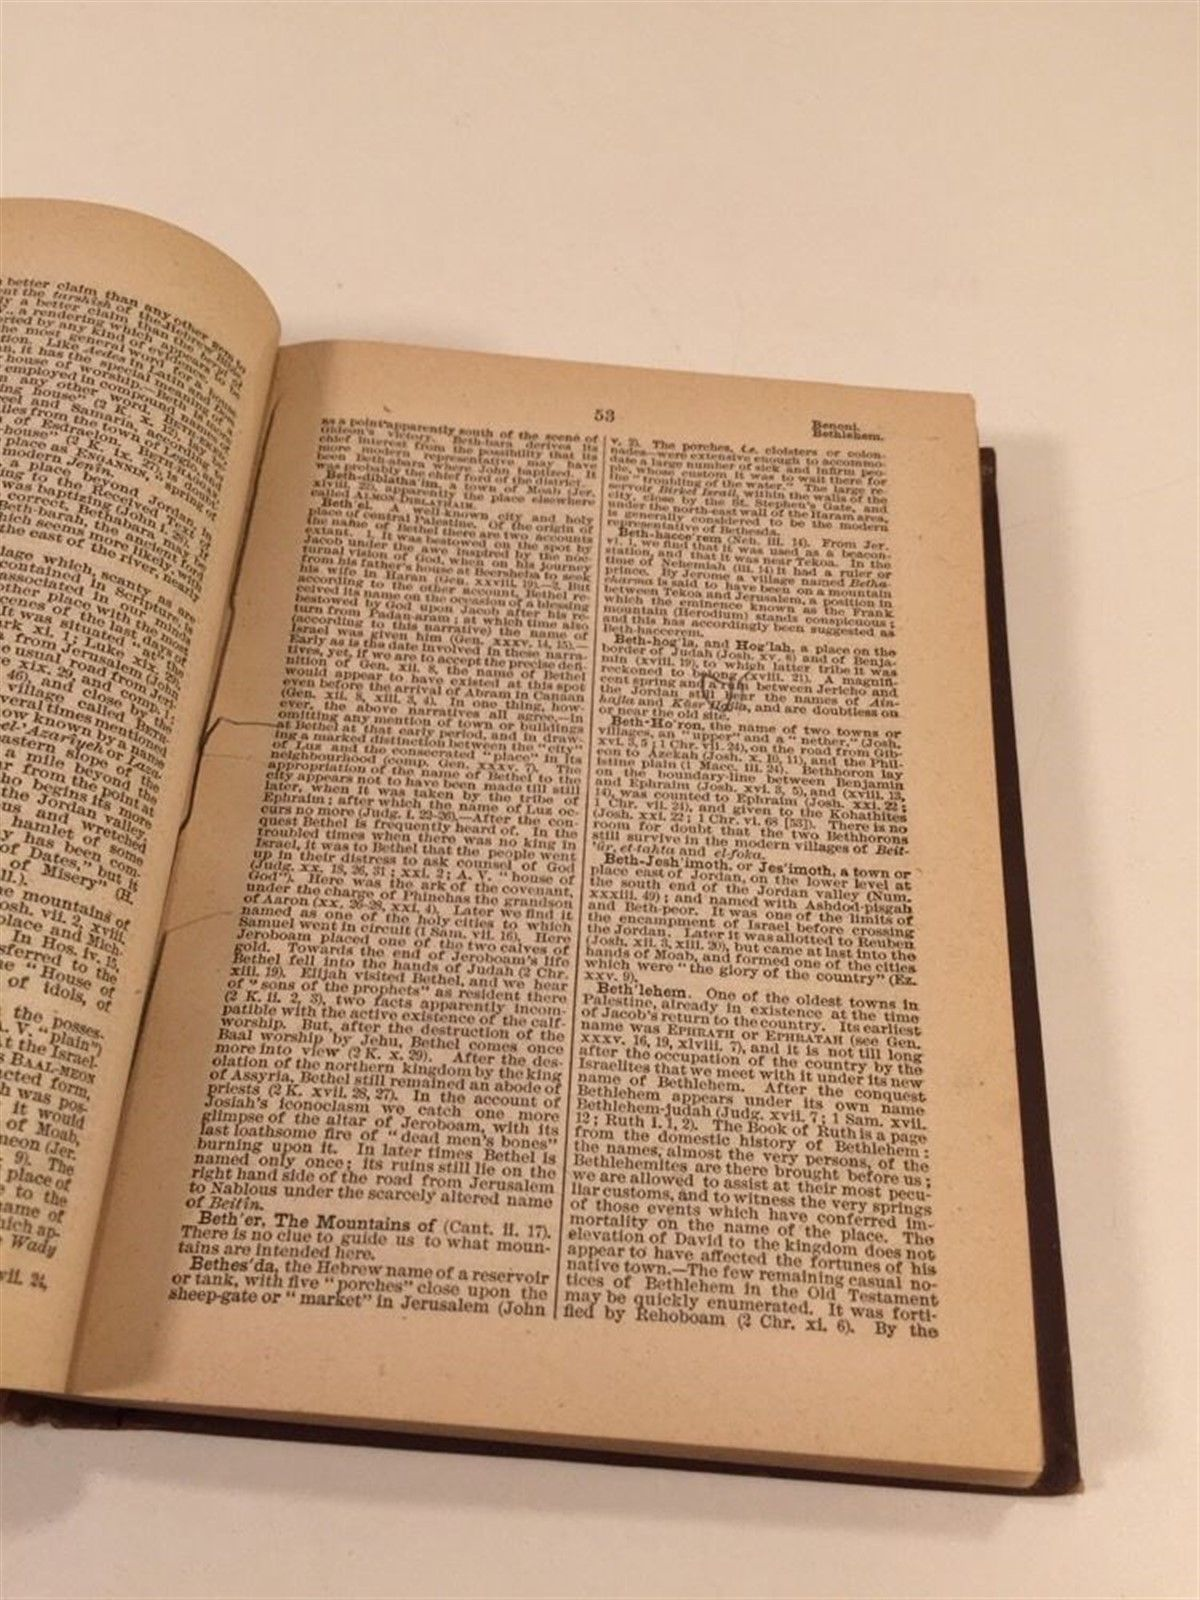 Smith's Bible Dictionary - 1880 - William Smith LL.D. - HC - Natural History